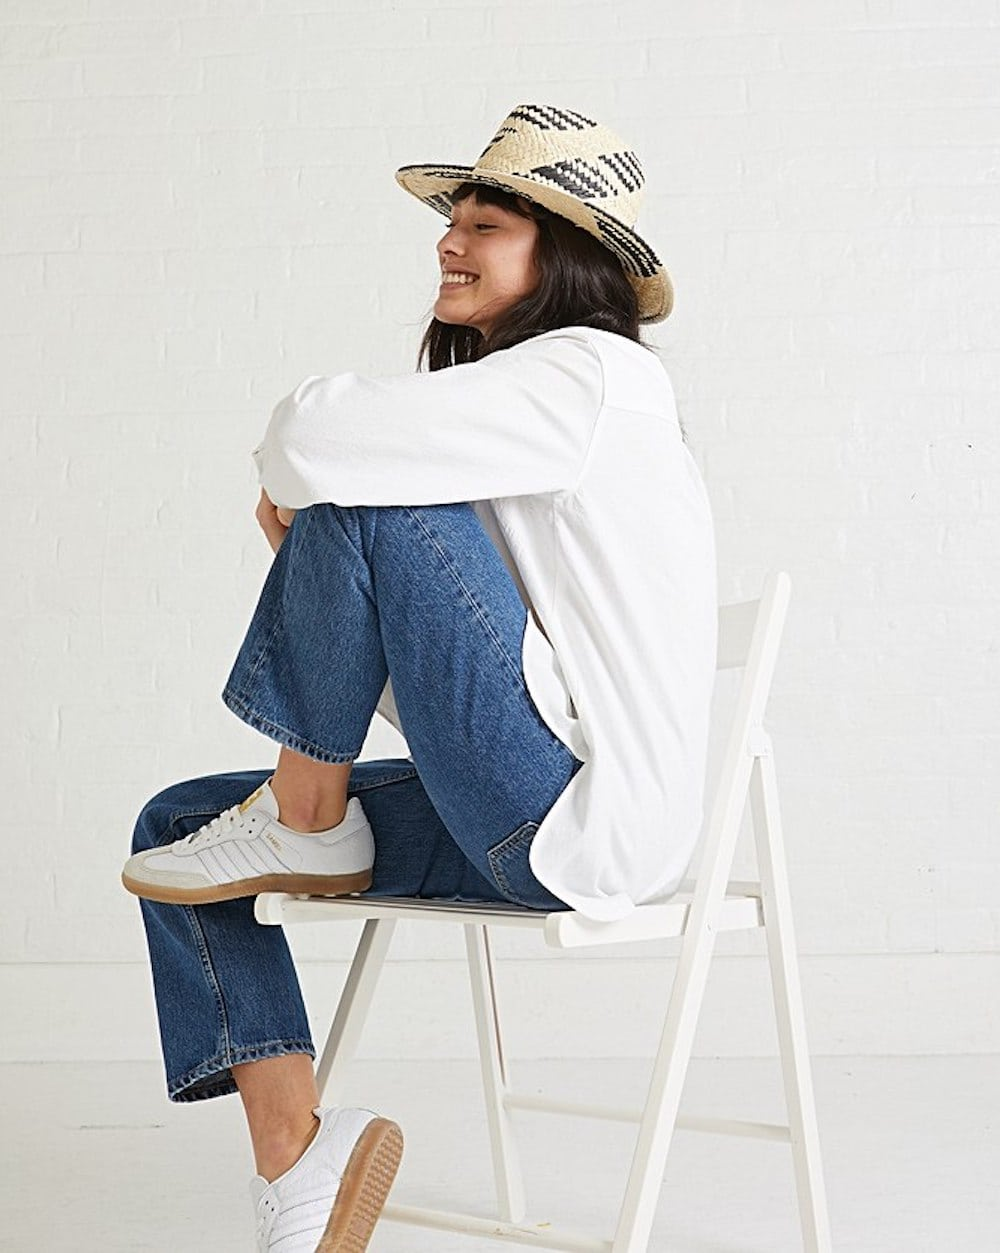 woman sat on chair with jeans and white shirt and straw hat